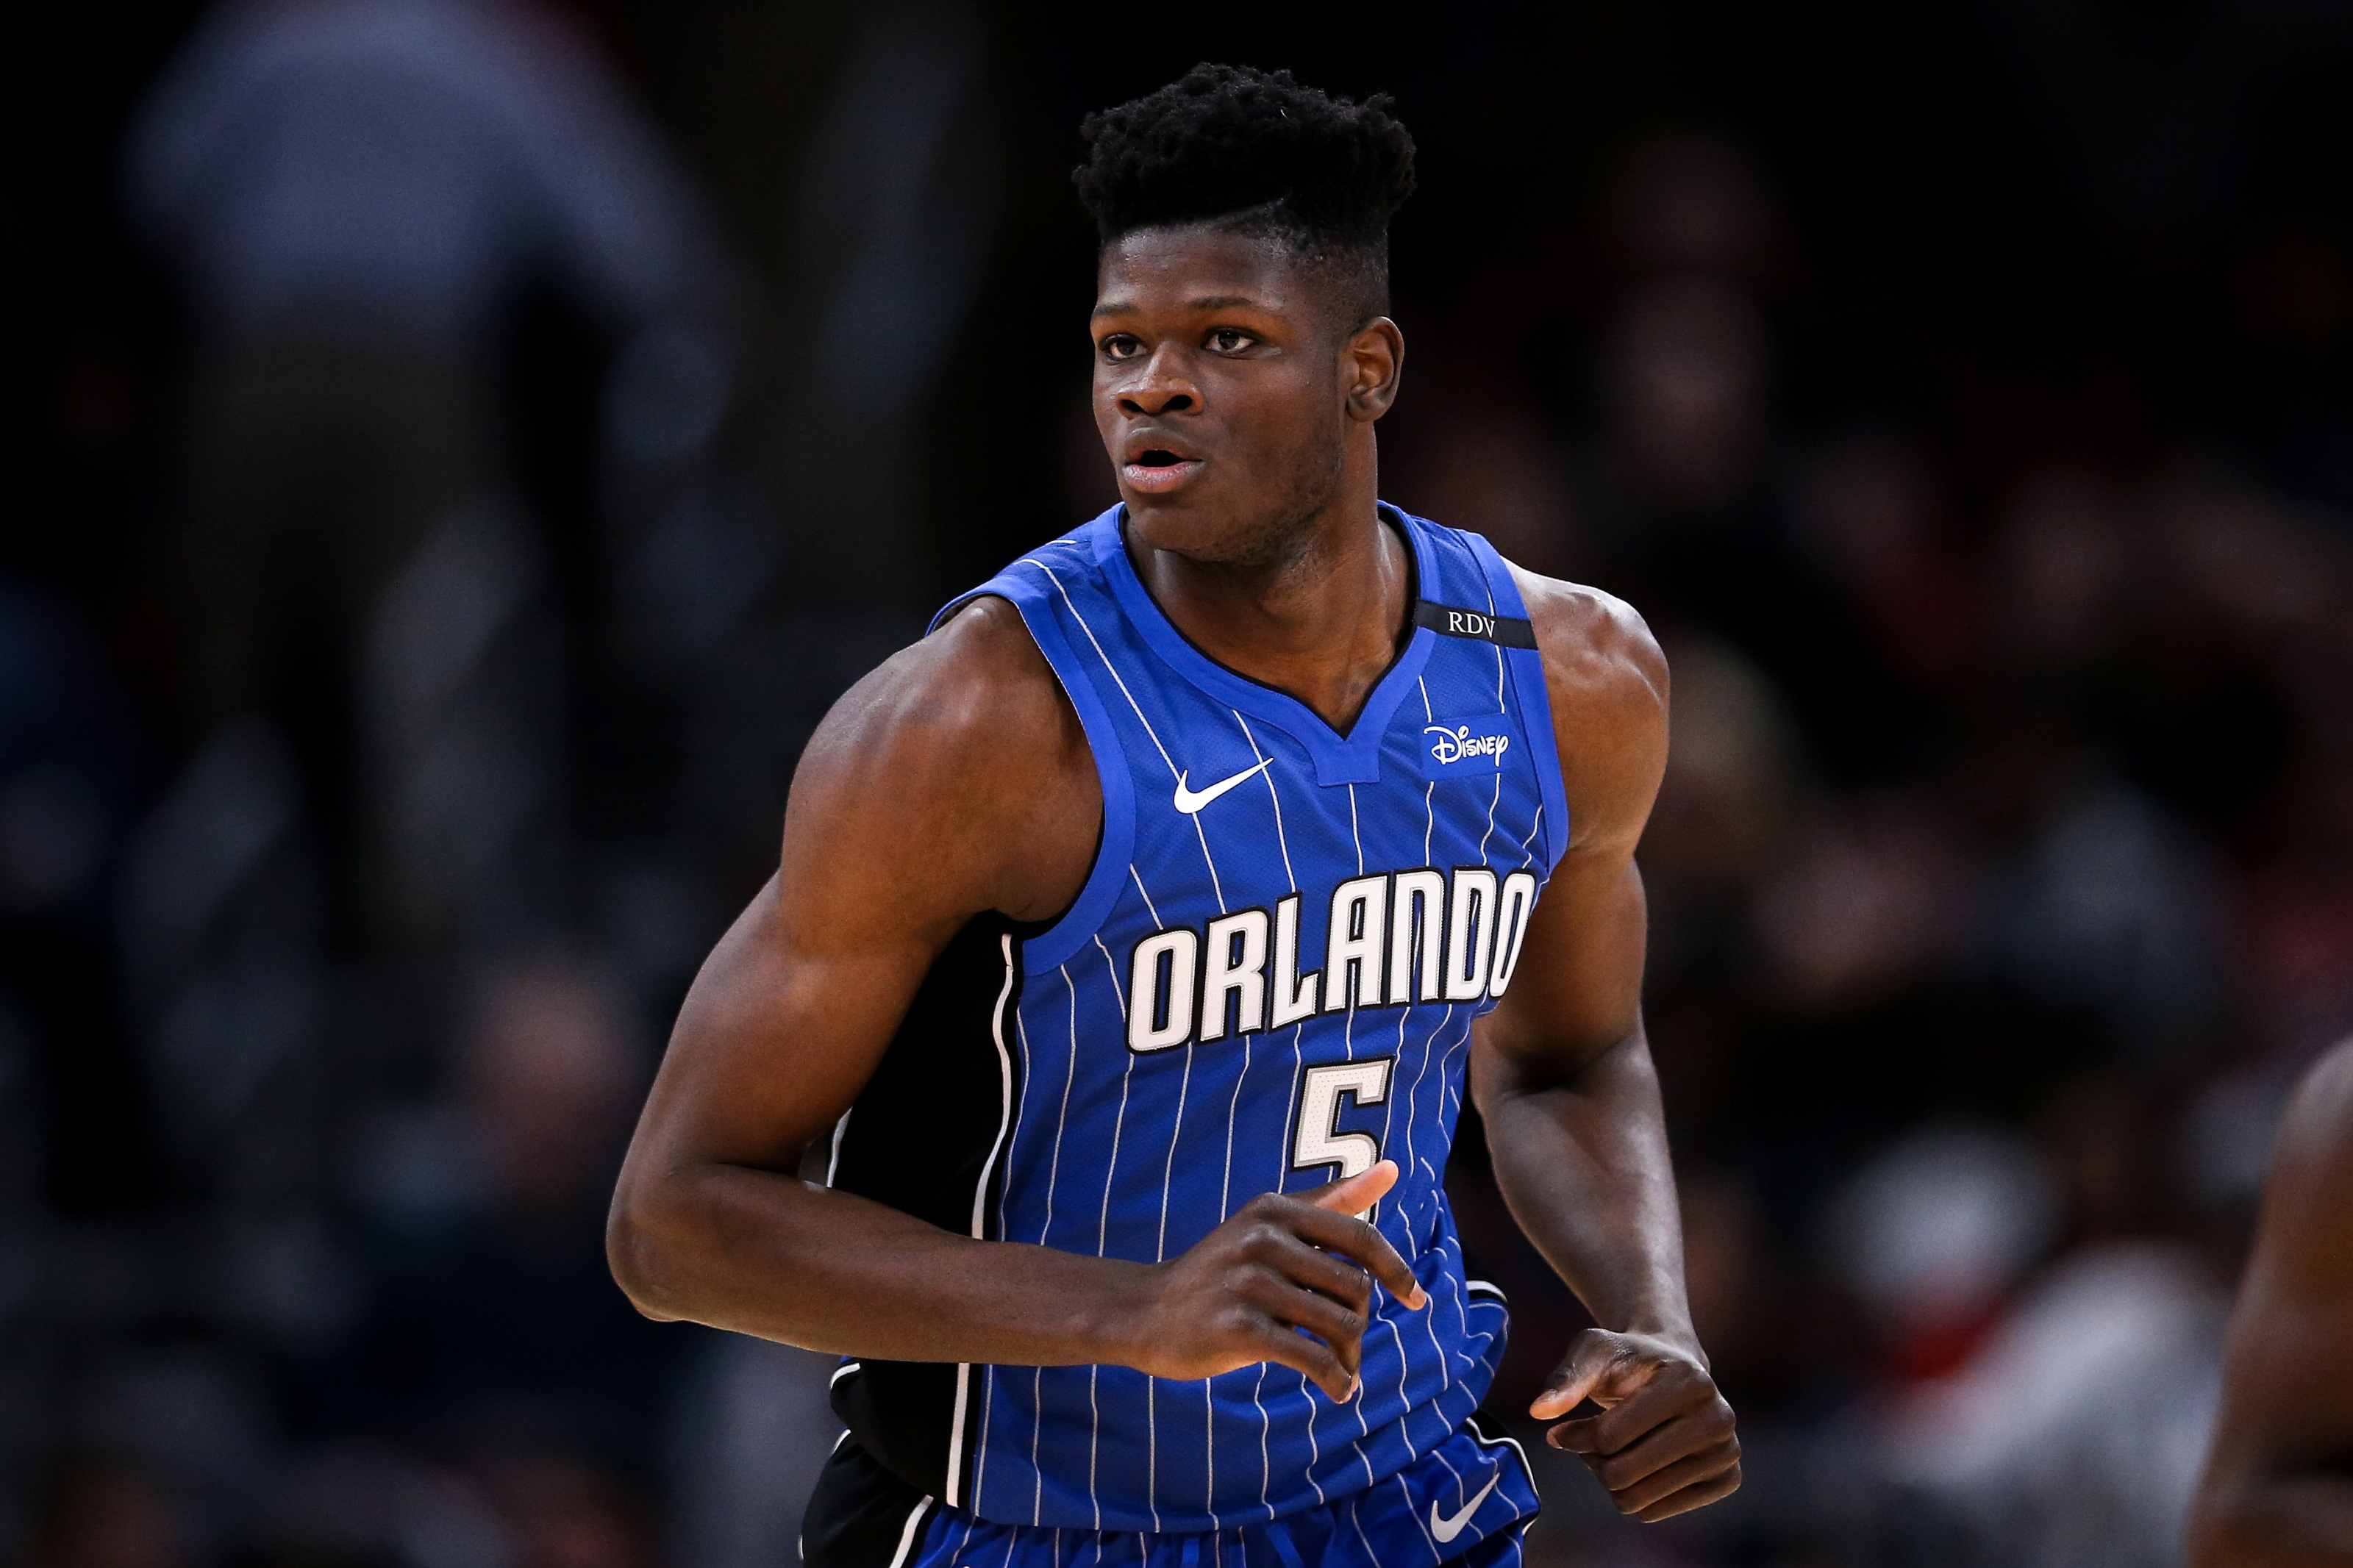 Orlando Magic: What does Nikola Vucevic signing mean for Mo Bamba?